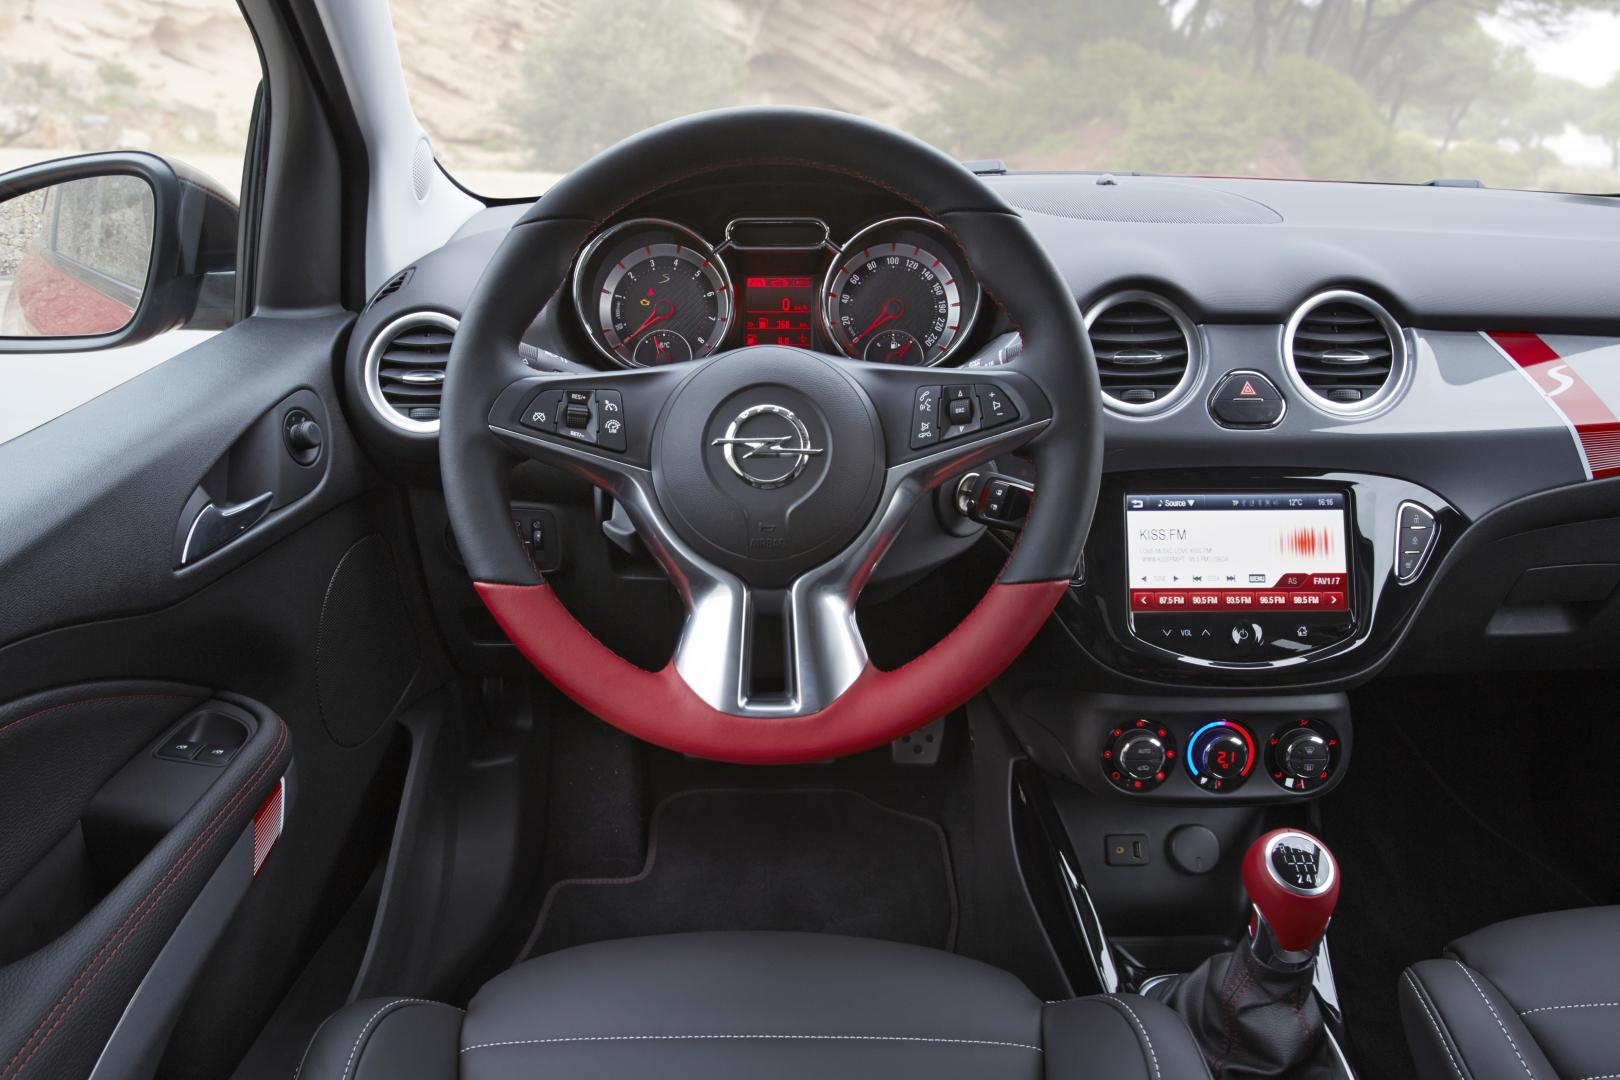 opel adam s 1 4 turbo 2015 test en specificaties. Black Bedroom Furniture Sets. Home Design Ideas